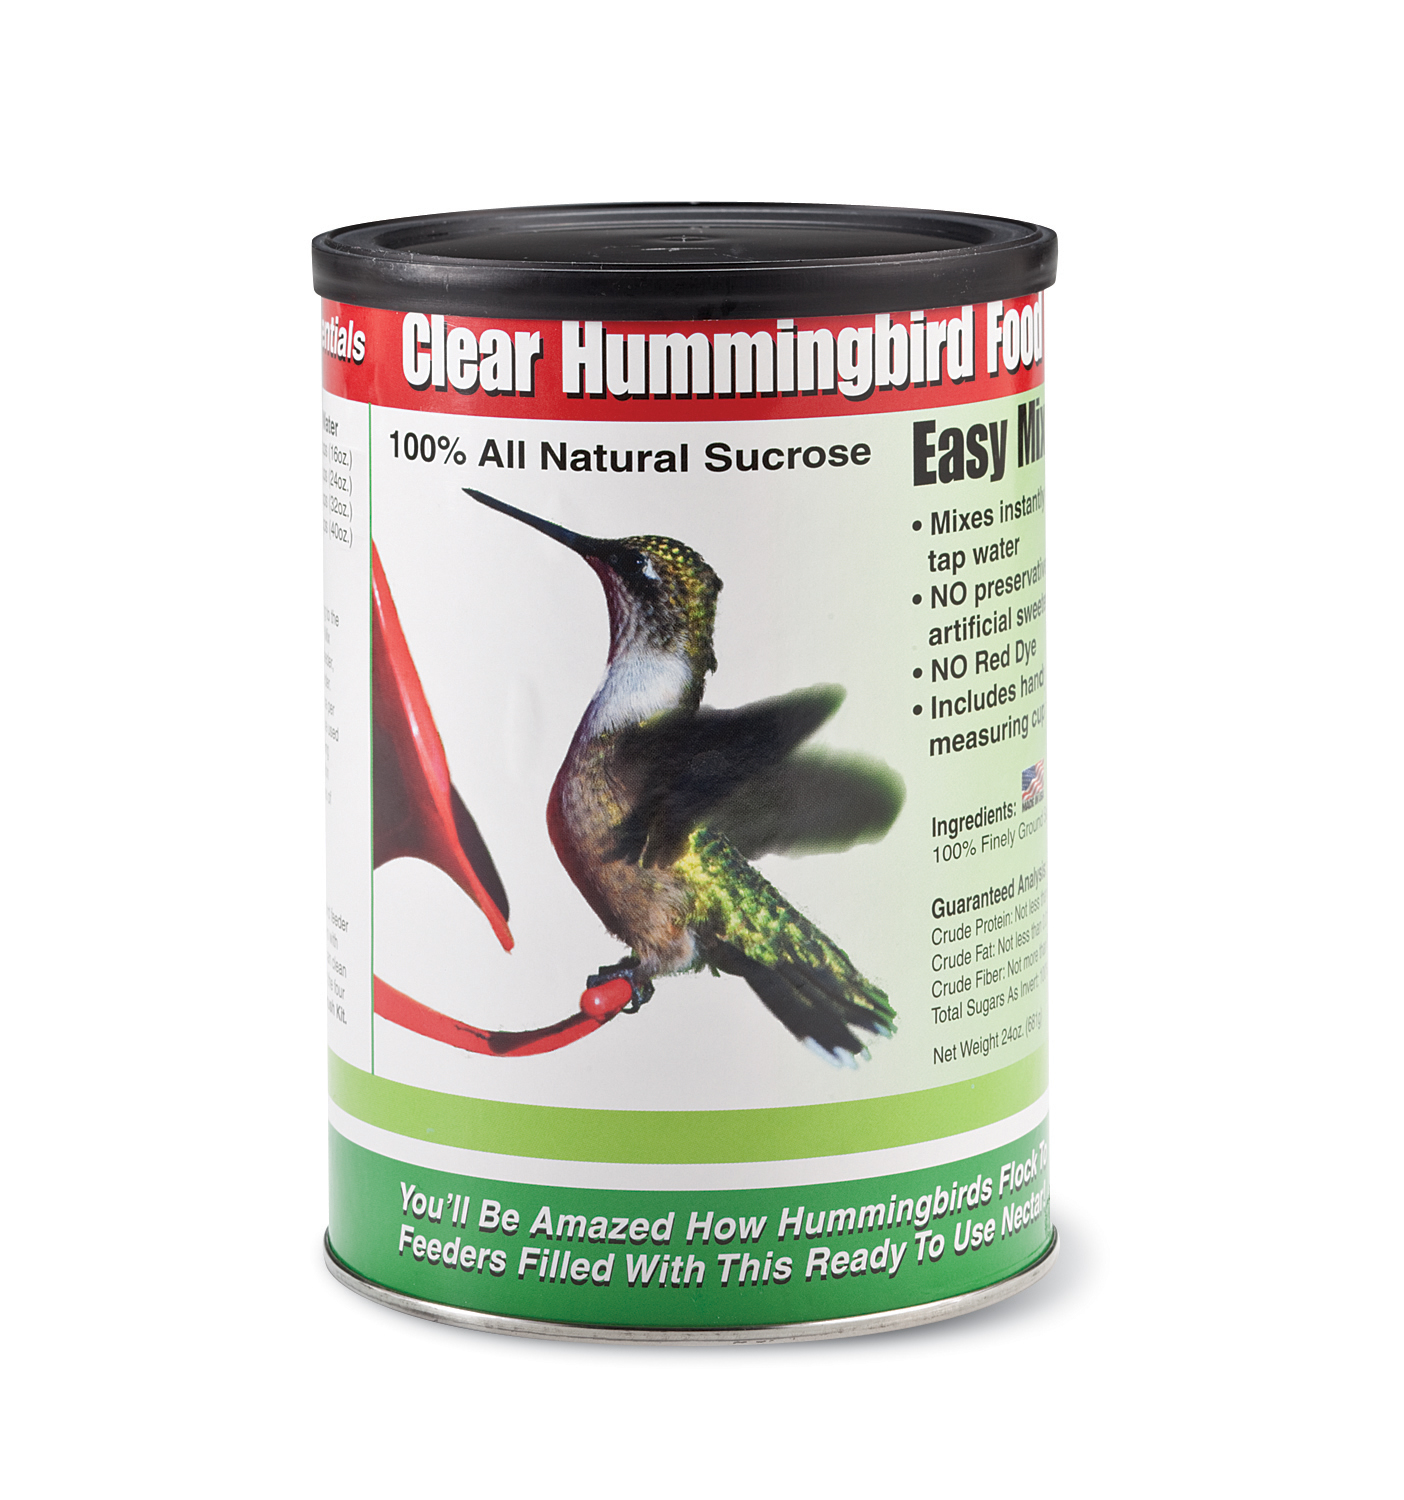 amazon feeder product gallon hummingbird best pcr food lb reviews original customer helpful rated instant nectar in perky image com pet one